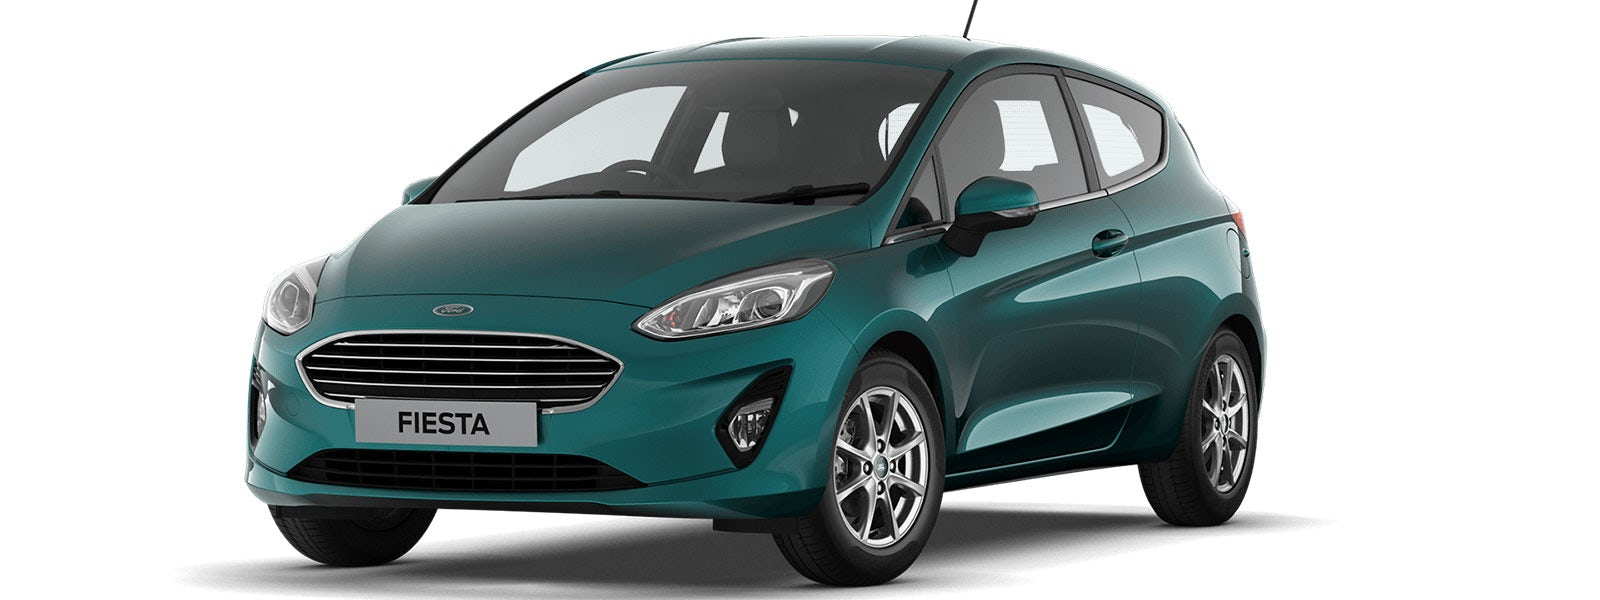 2017 ford fiesta colours guide and prices carwow black cars are notorious for showing dirt quickly however so budget for plenty of car washes publicscrutiny Choice Image